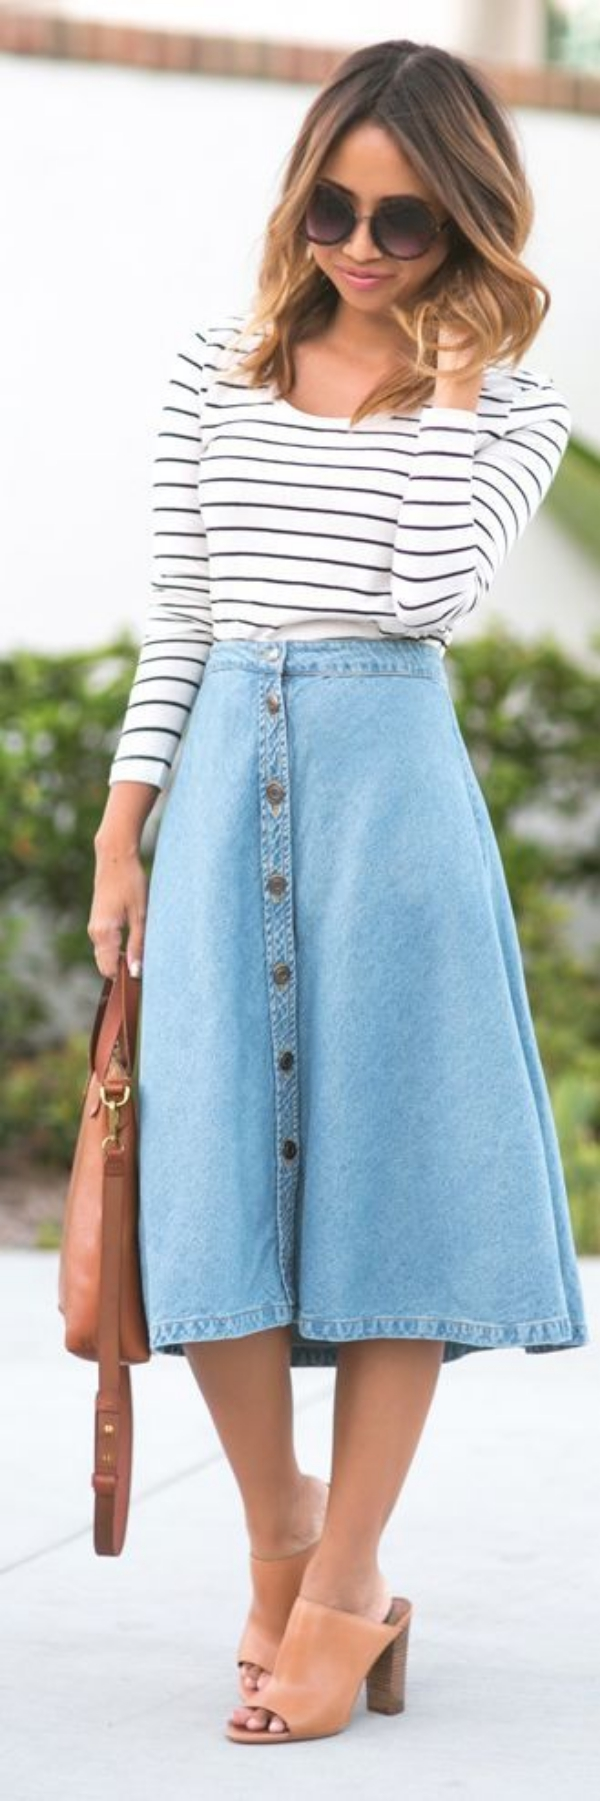 Dressing-Tips-for-Petite-Woman-5